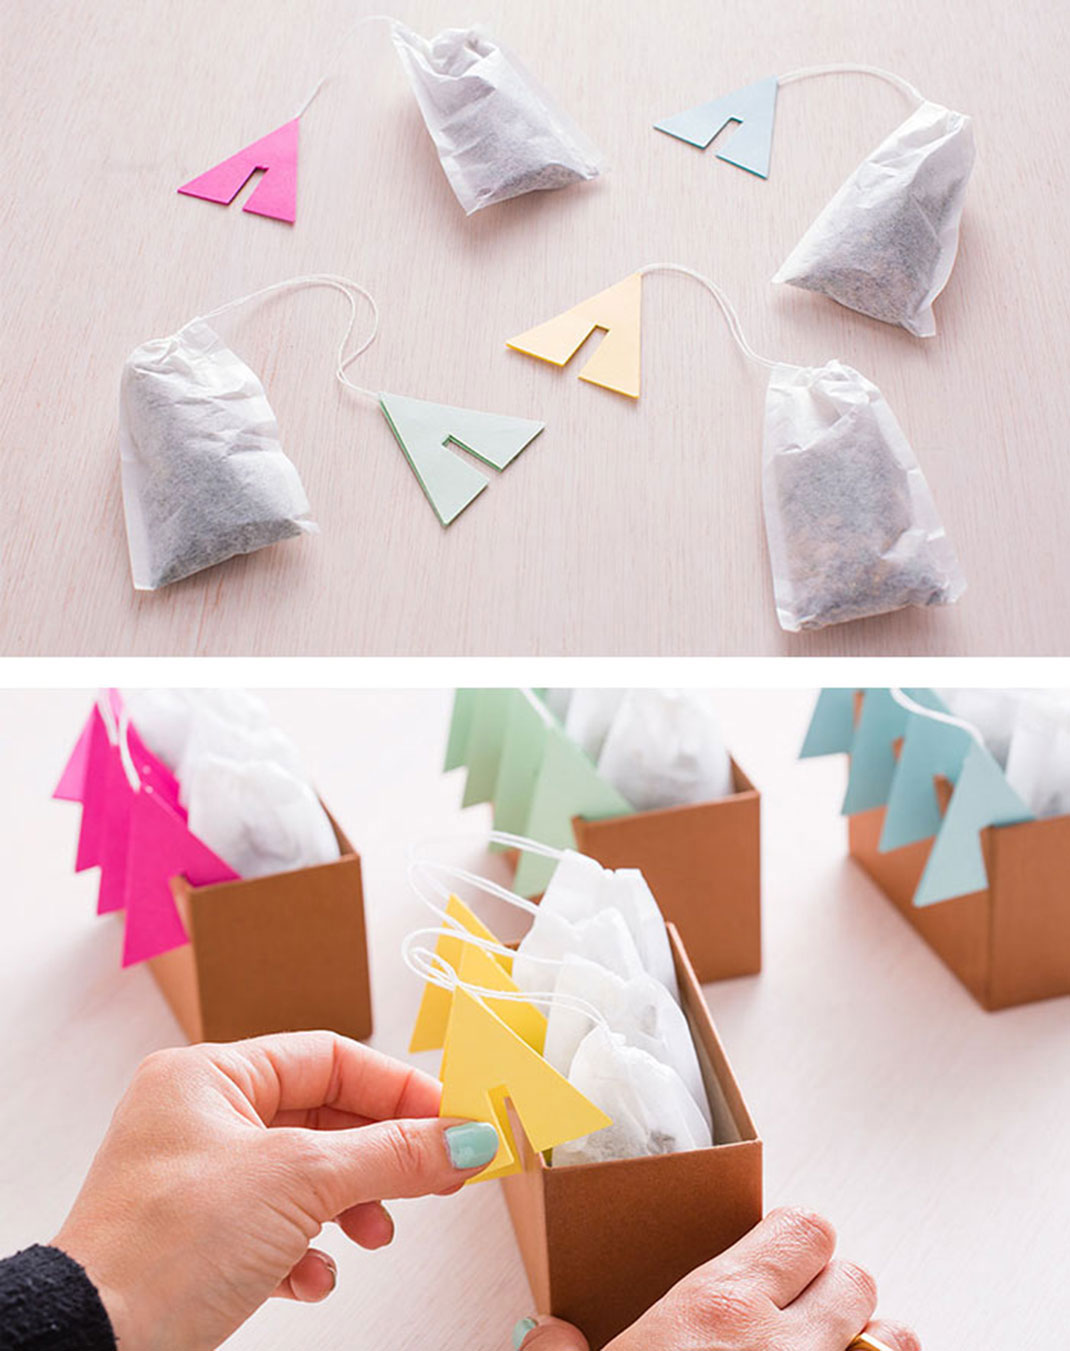 sachet-the-creation-40